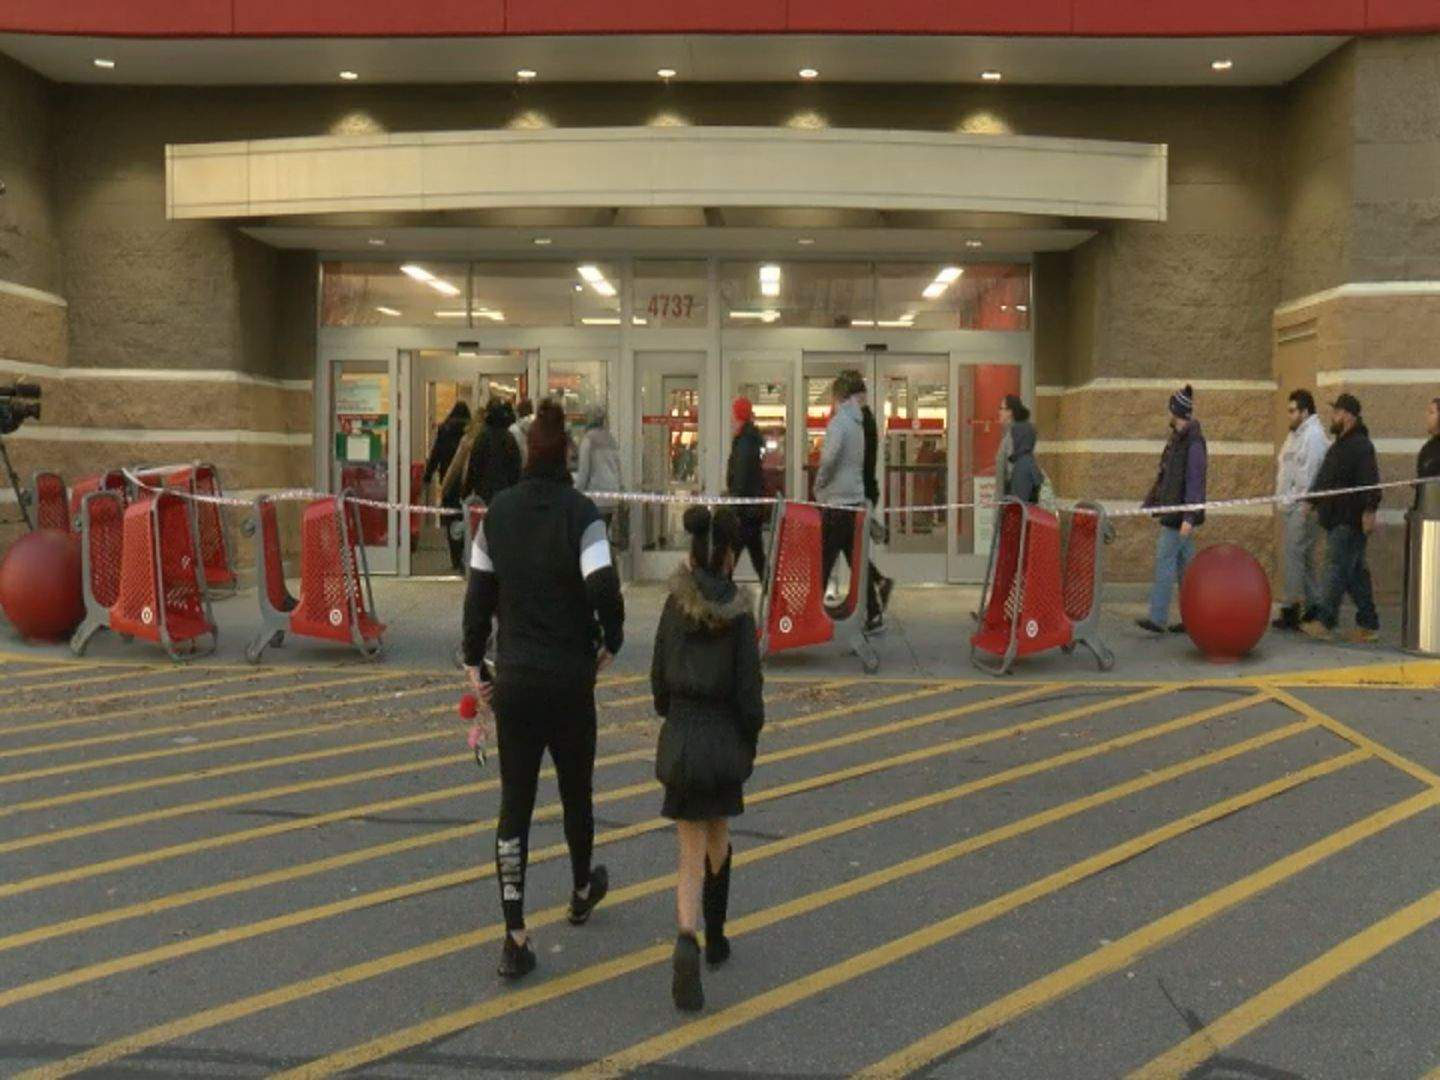 Tvs Hot Item Many People In Search Of As Black Friday Shopping Begins